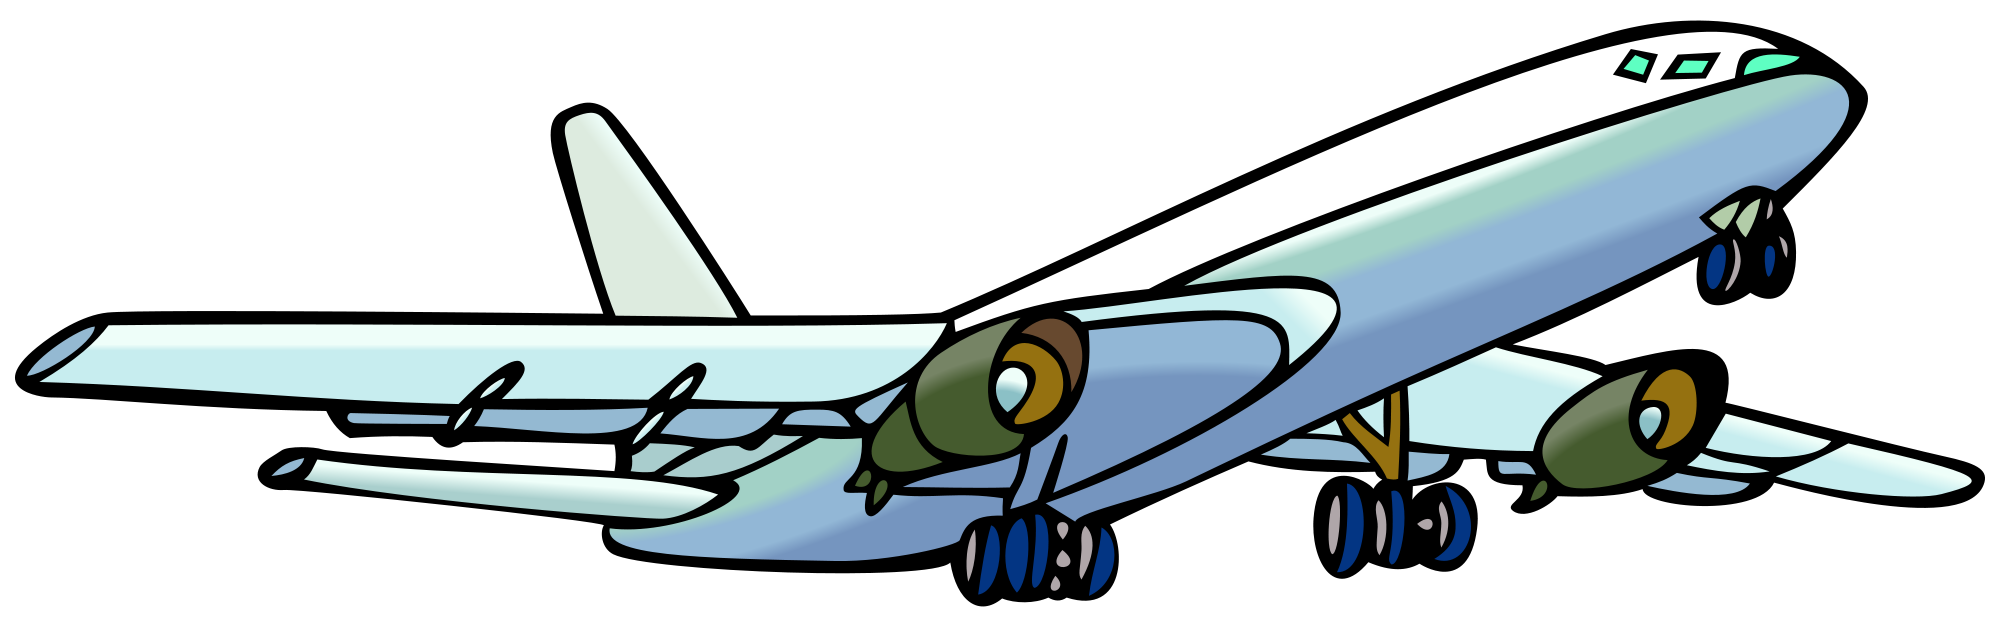 Aircraft clipart #2, Download drawings